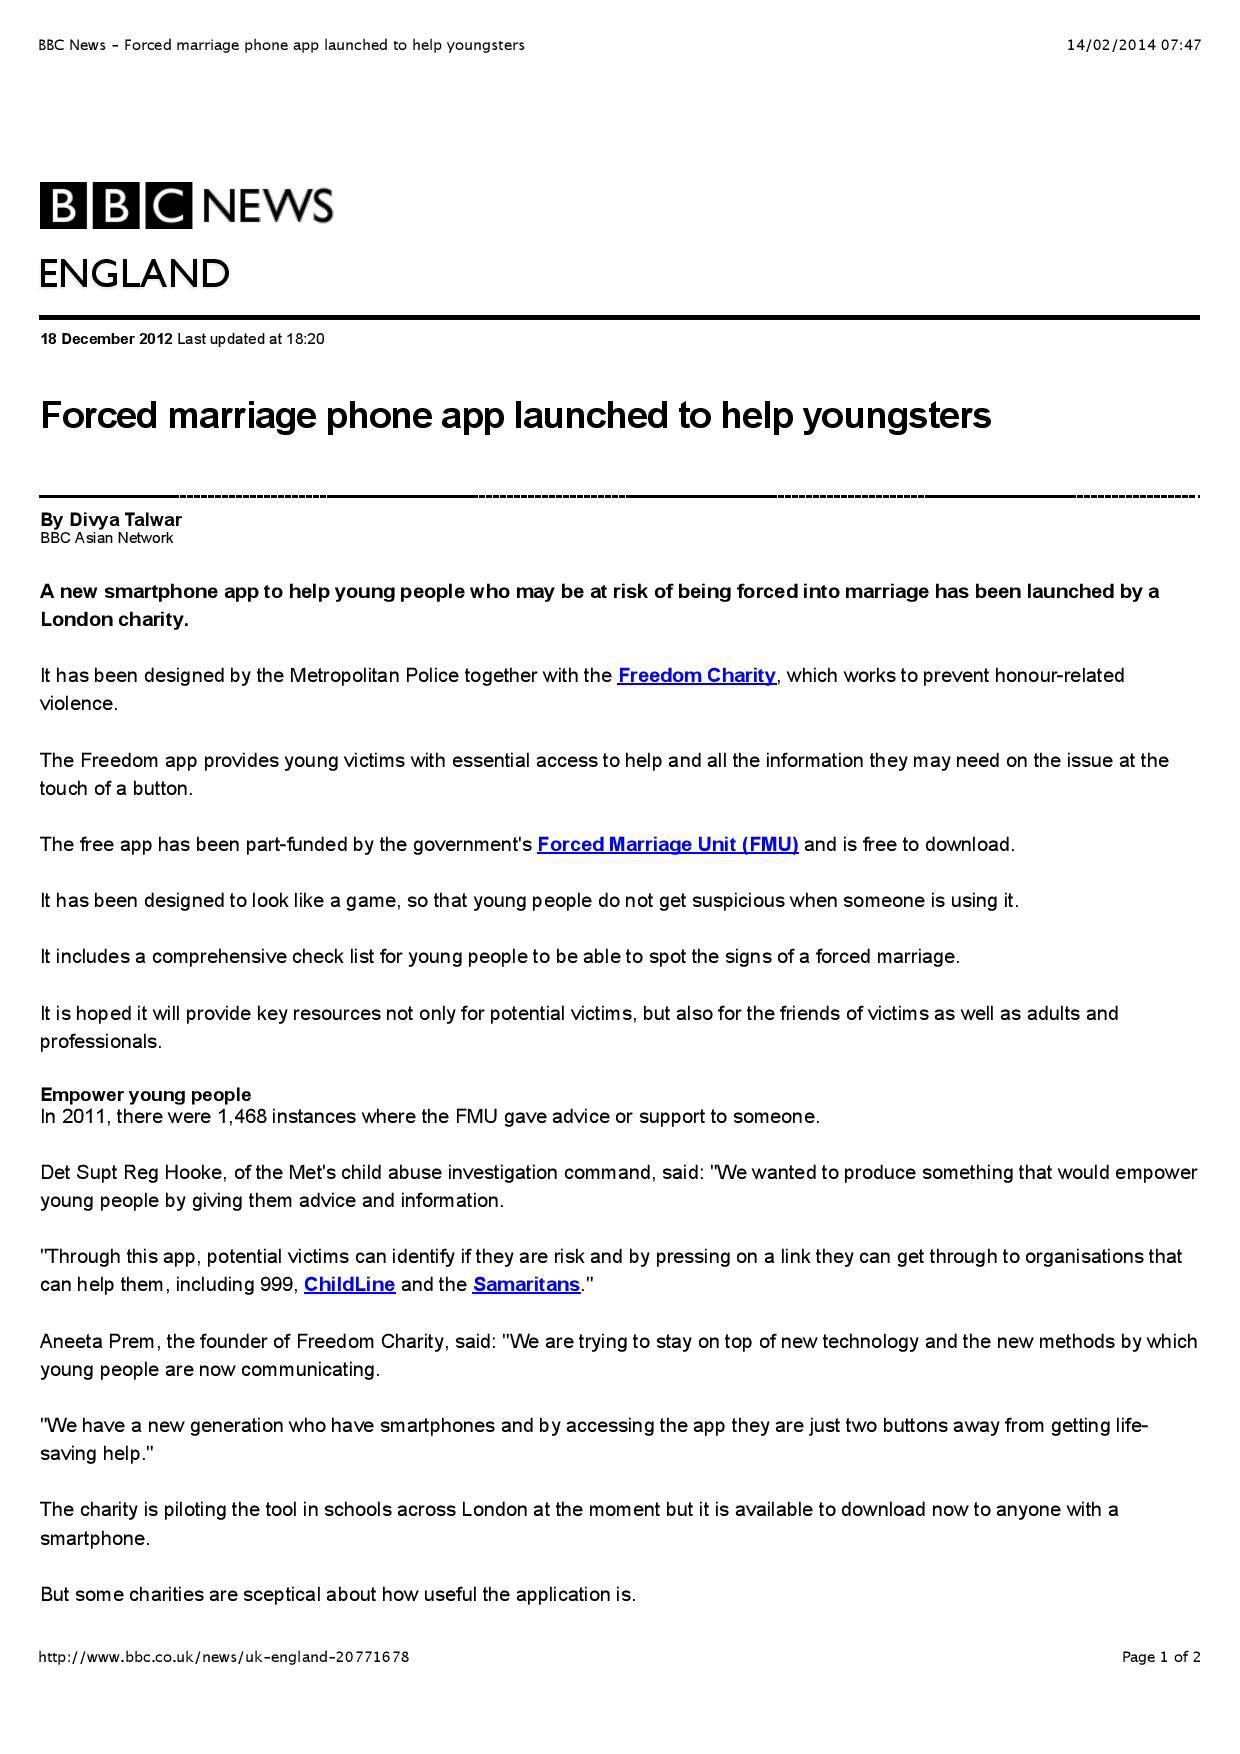 bbc-news-forced-marriage-phone-app-launched-to-help-youngsters-page-001